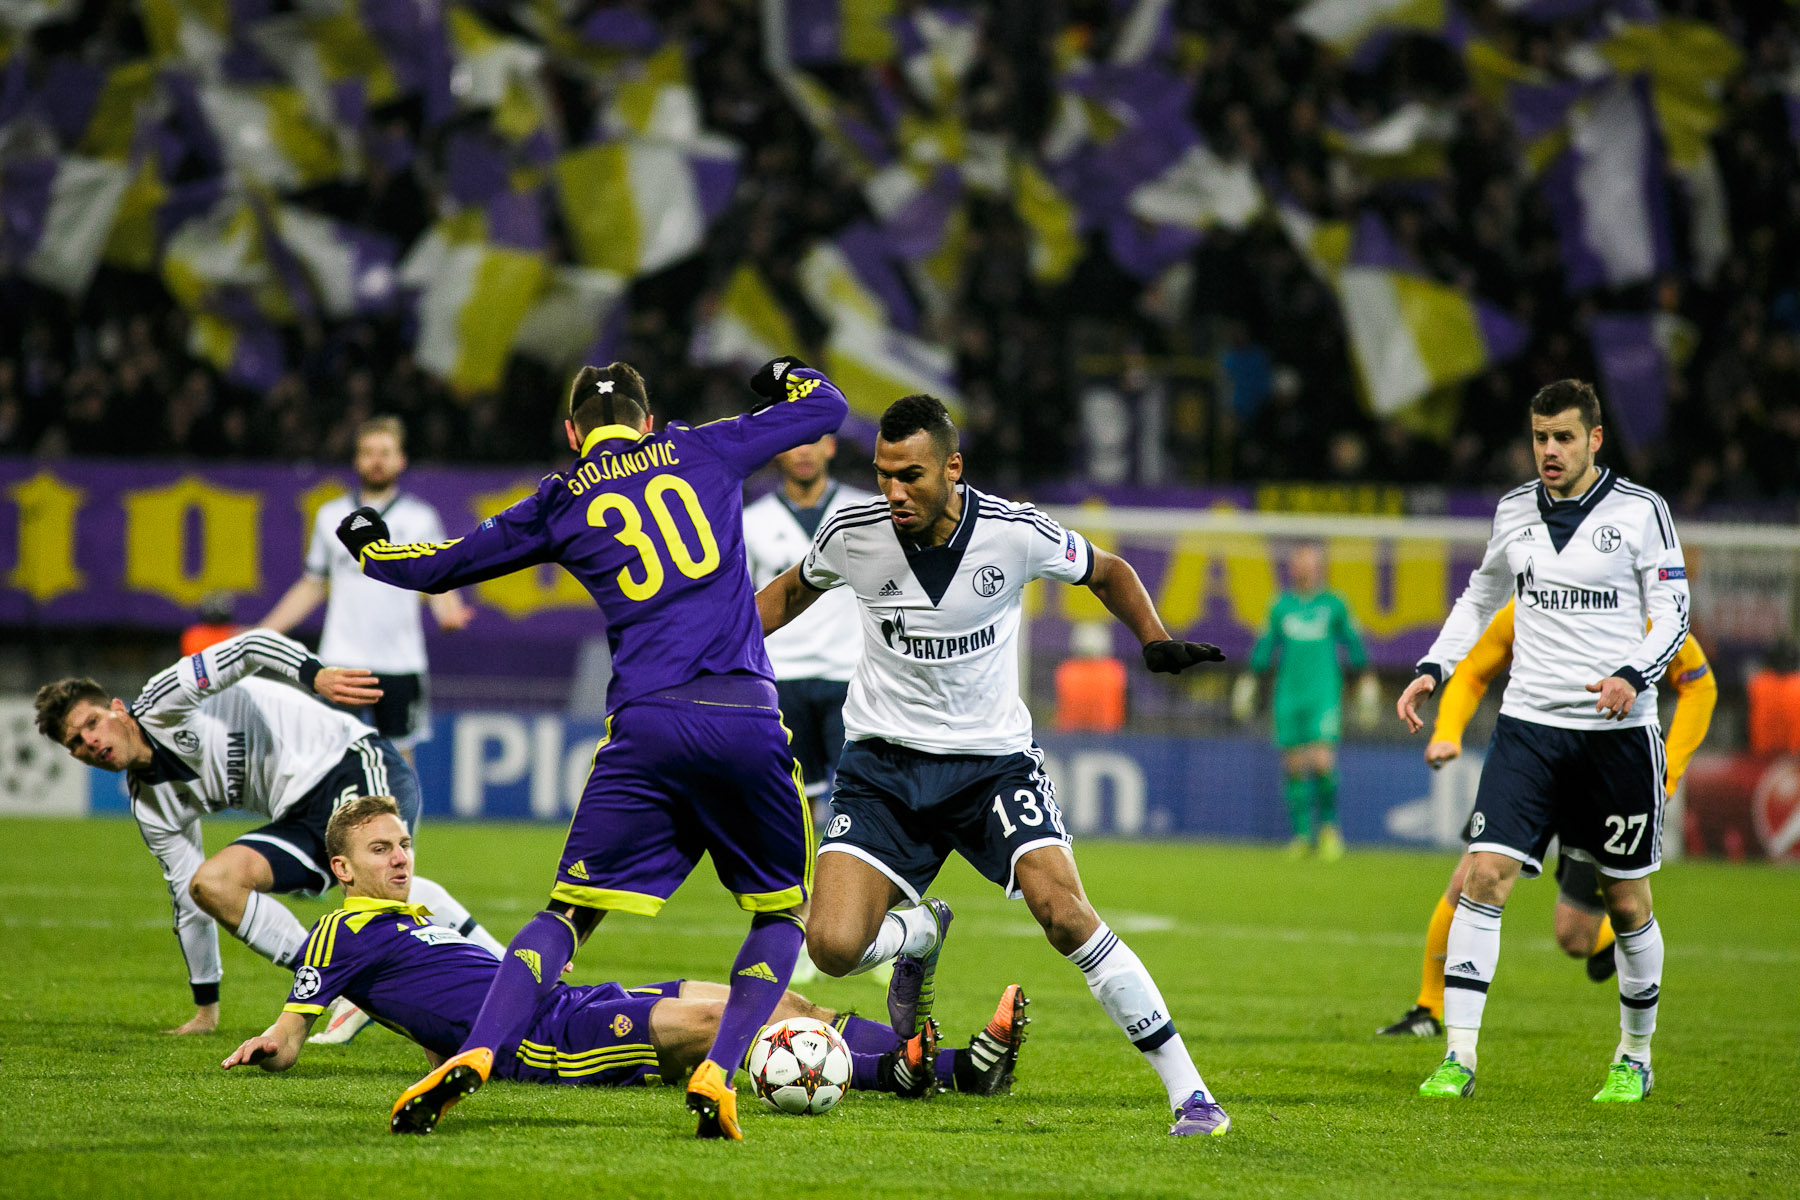 Eric Maxim Choupo-Moting of FC Schalke 04 is challenged by Petar Stojanovic of NK Maribor during the UEFA Champions League Group G match on December 10 in Maribor, Slovenia.